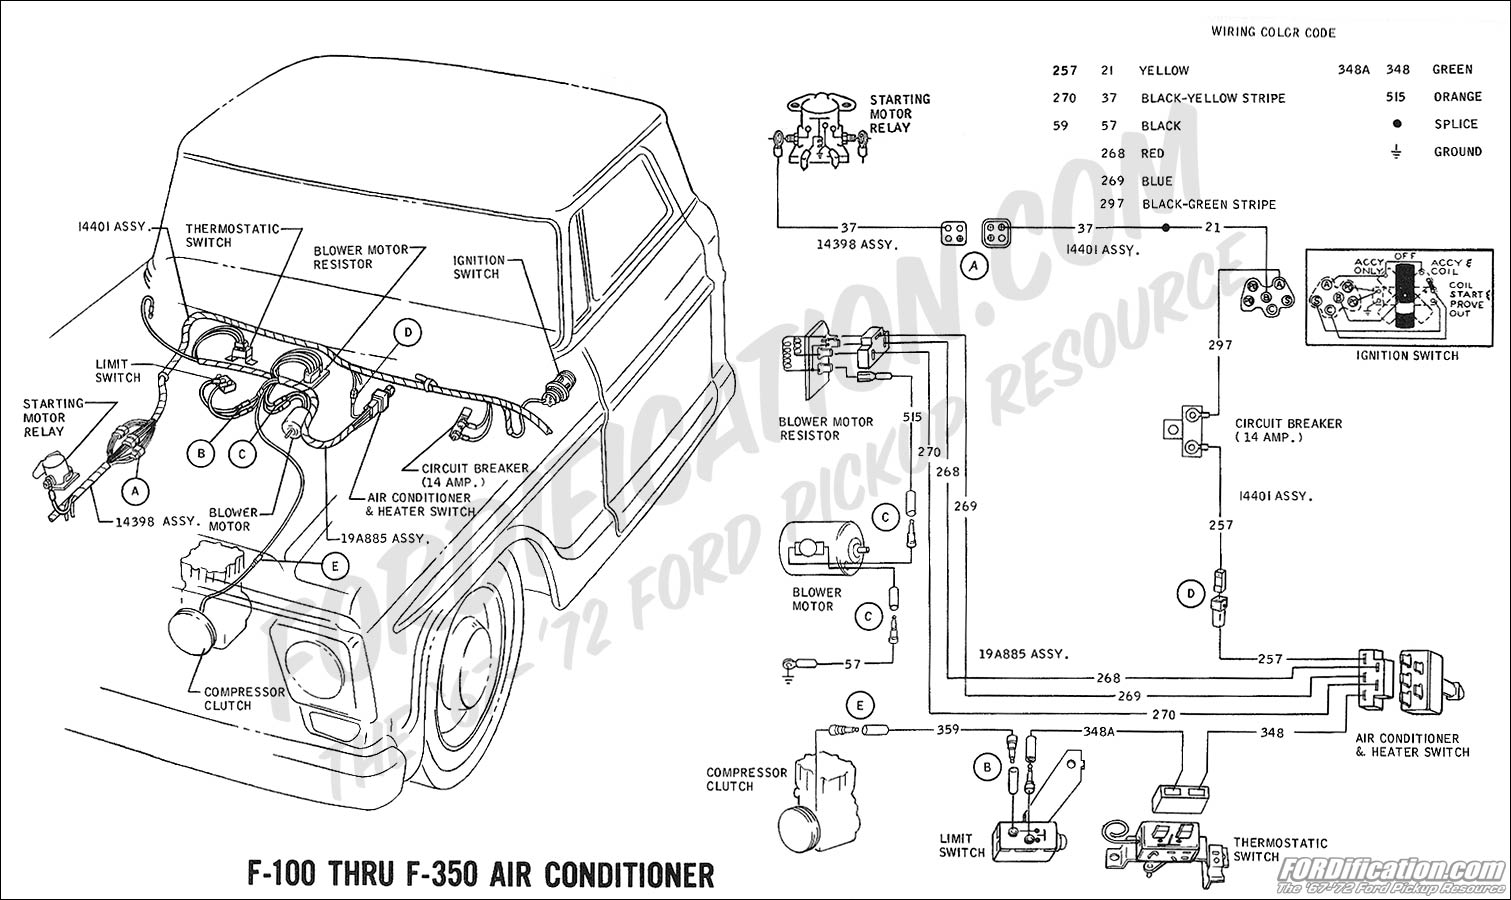 1986 c10 air conditioner diagram